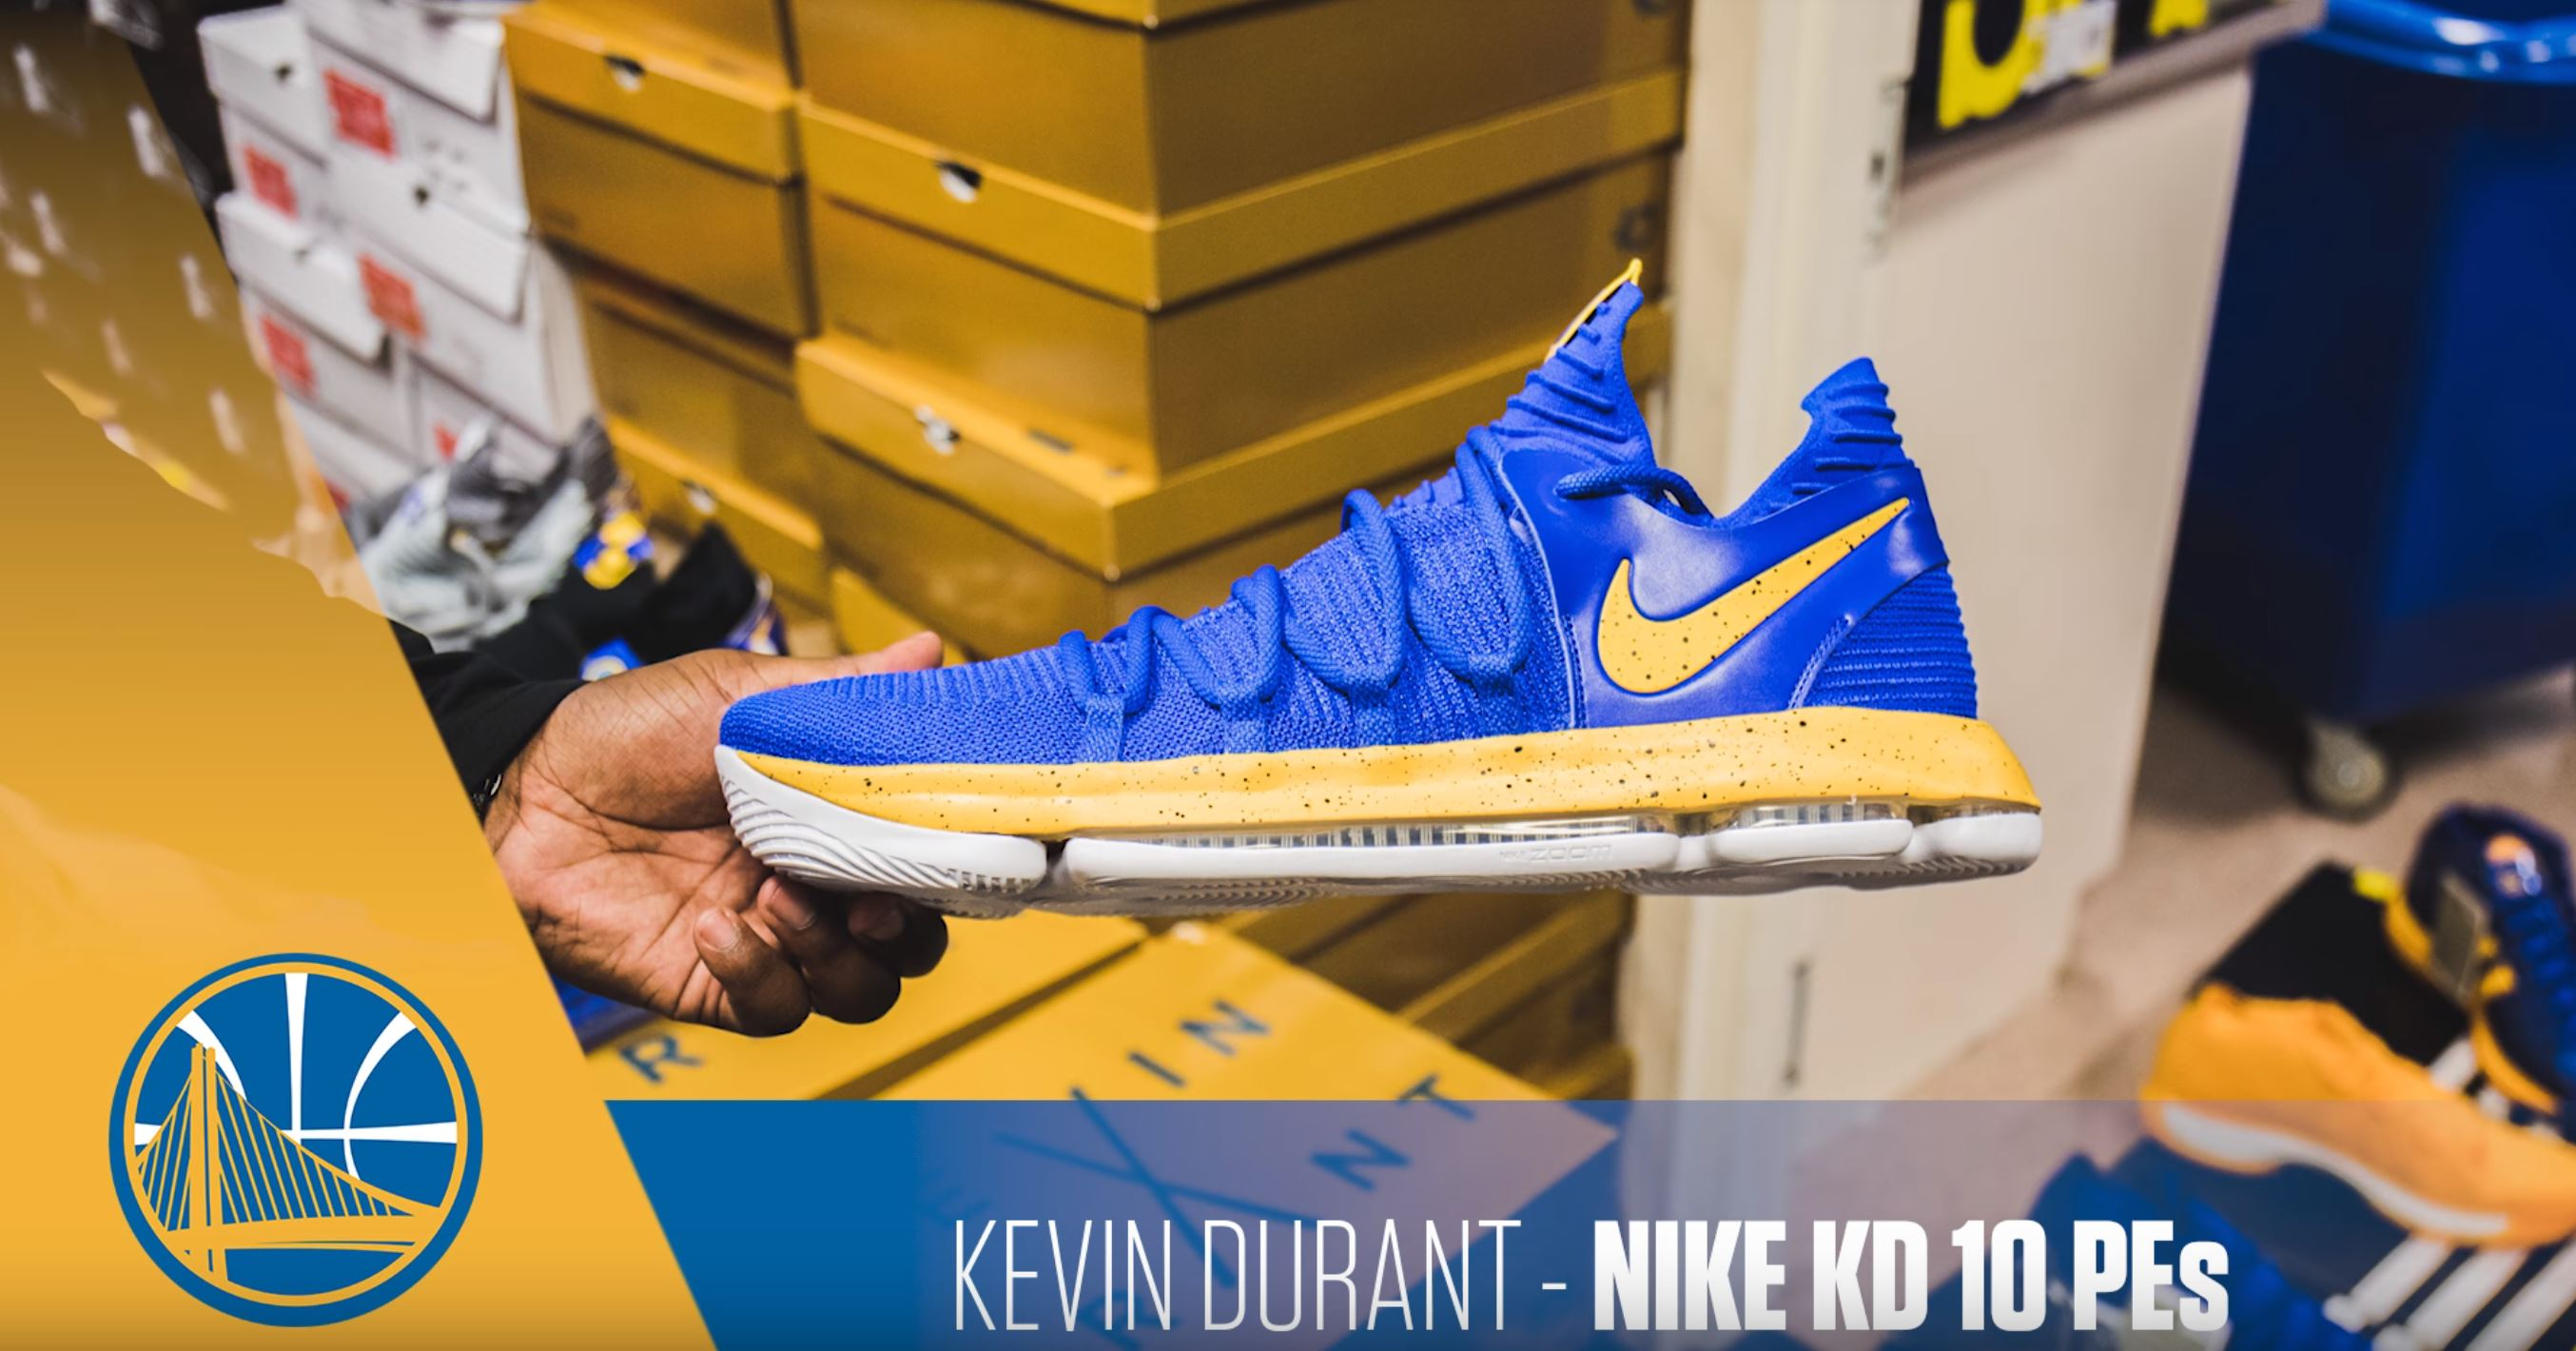 kevin durant nike kd 10 PE 1